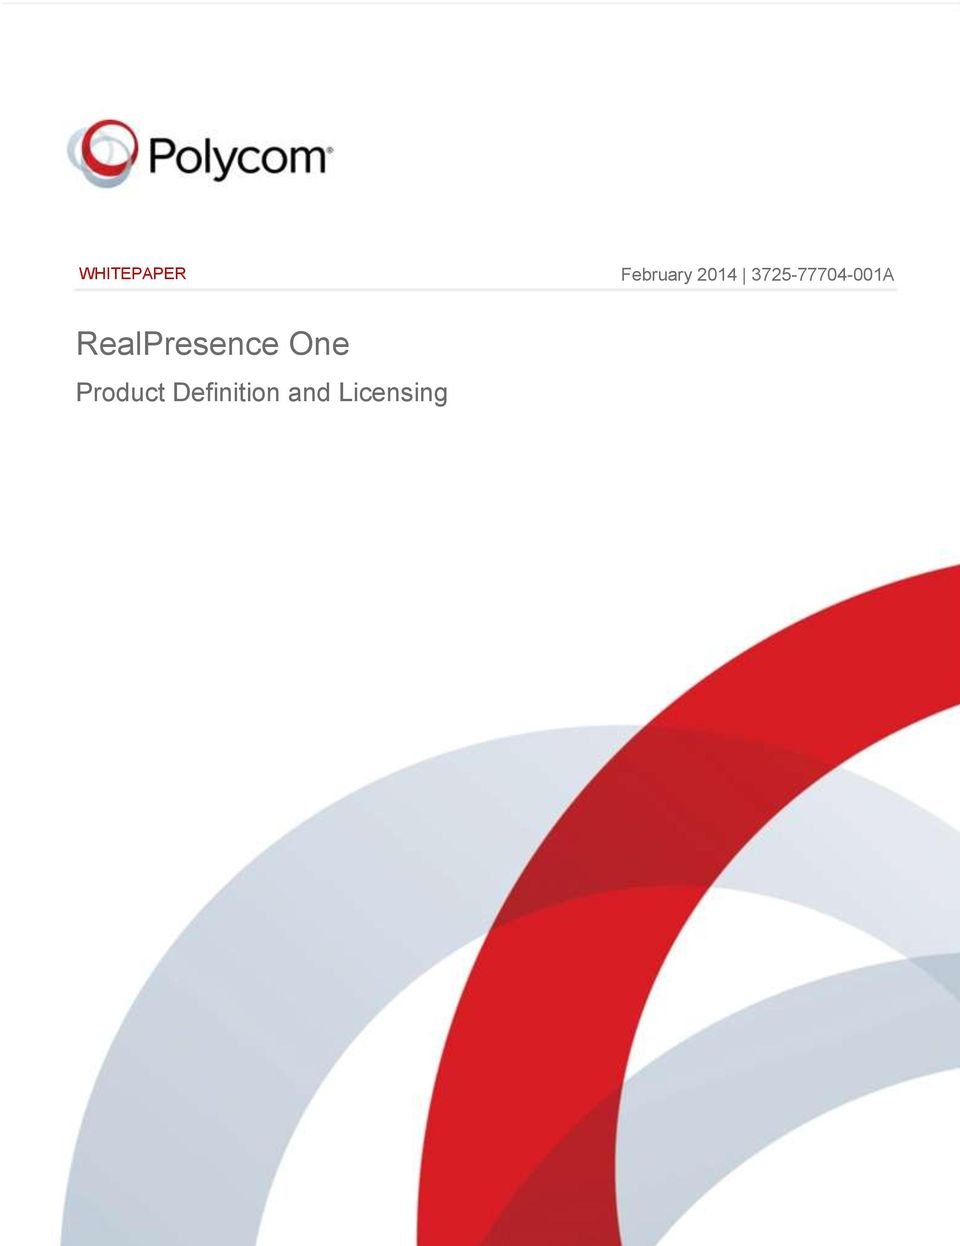 RealPresence One Product